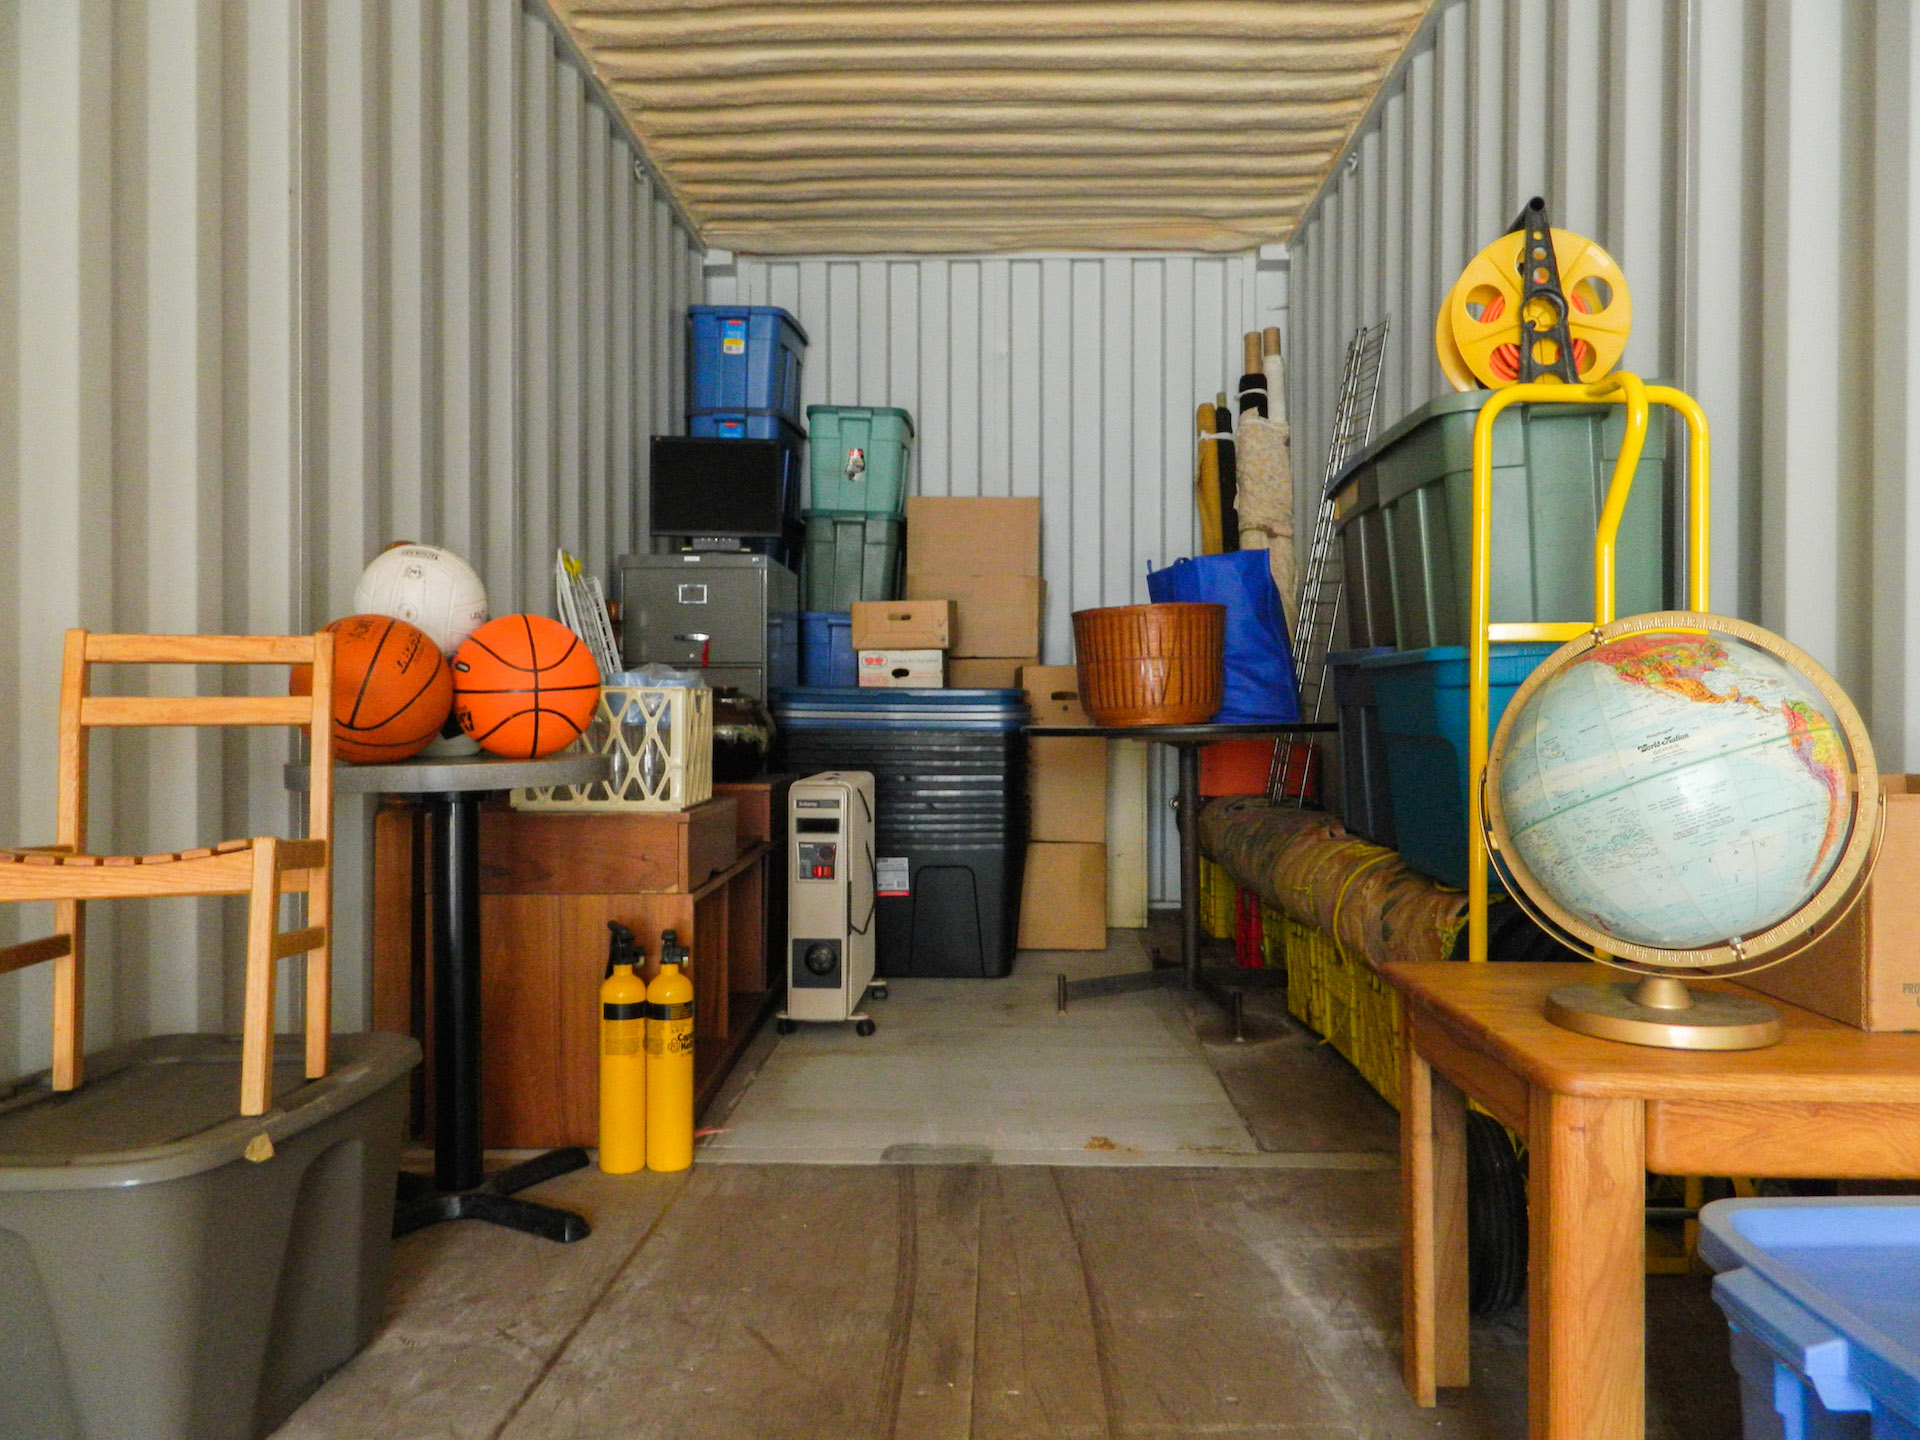 Inside of a storage container